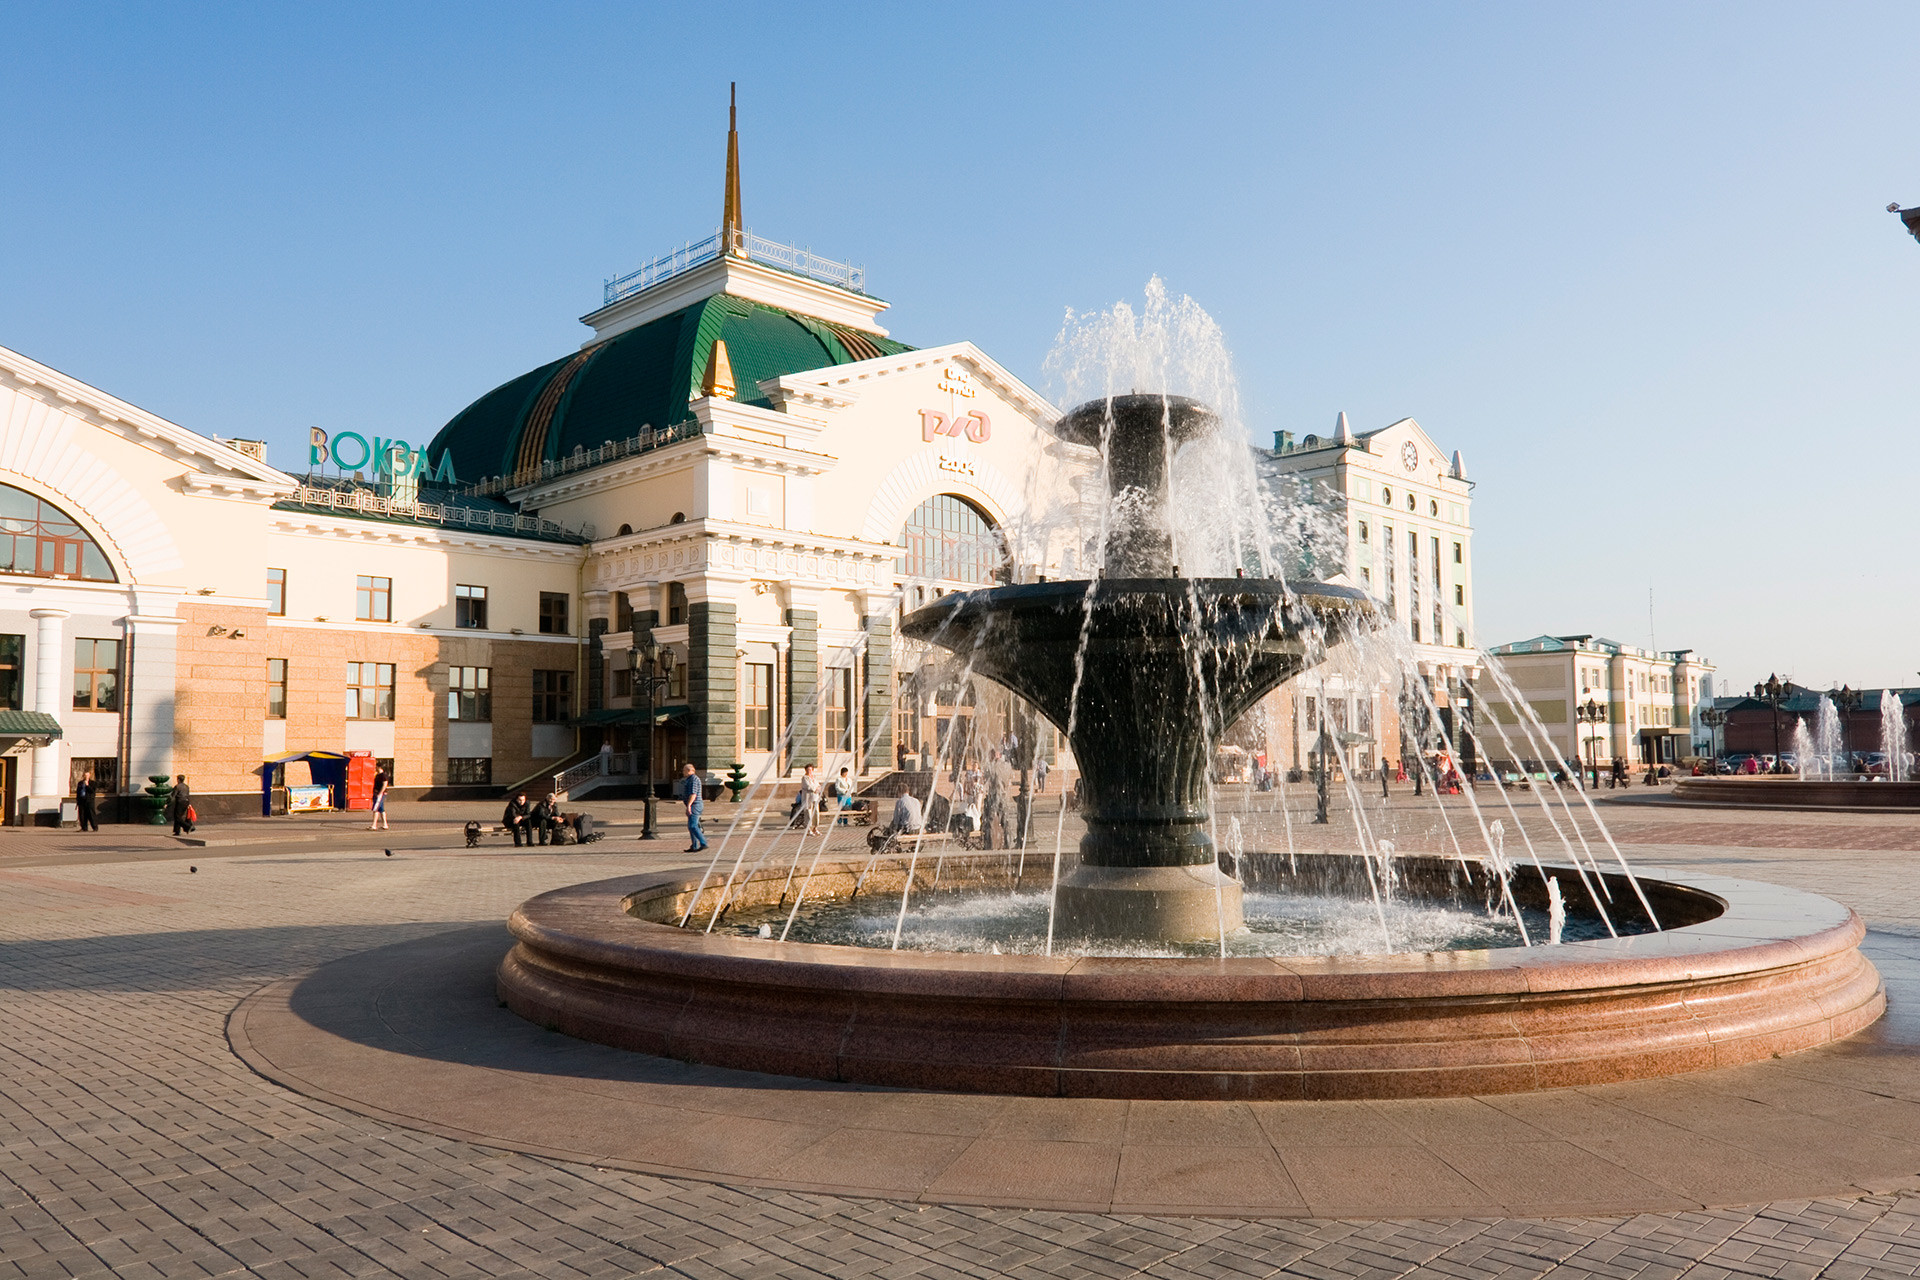 The fountain next to the railway station building in Krasnoyarsk.